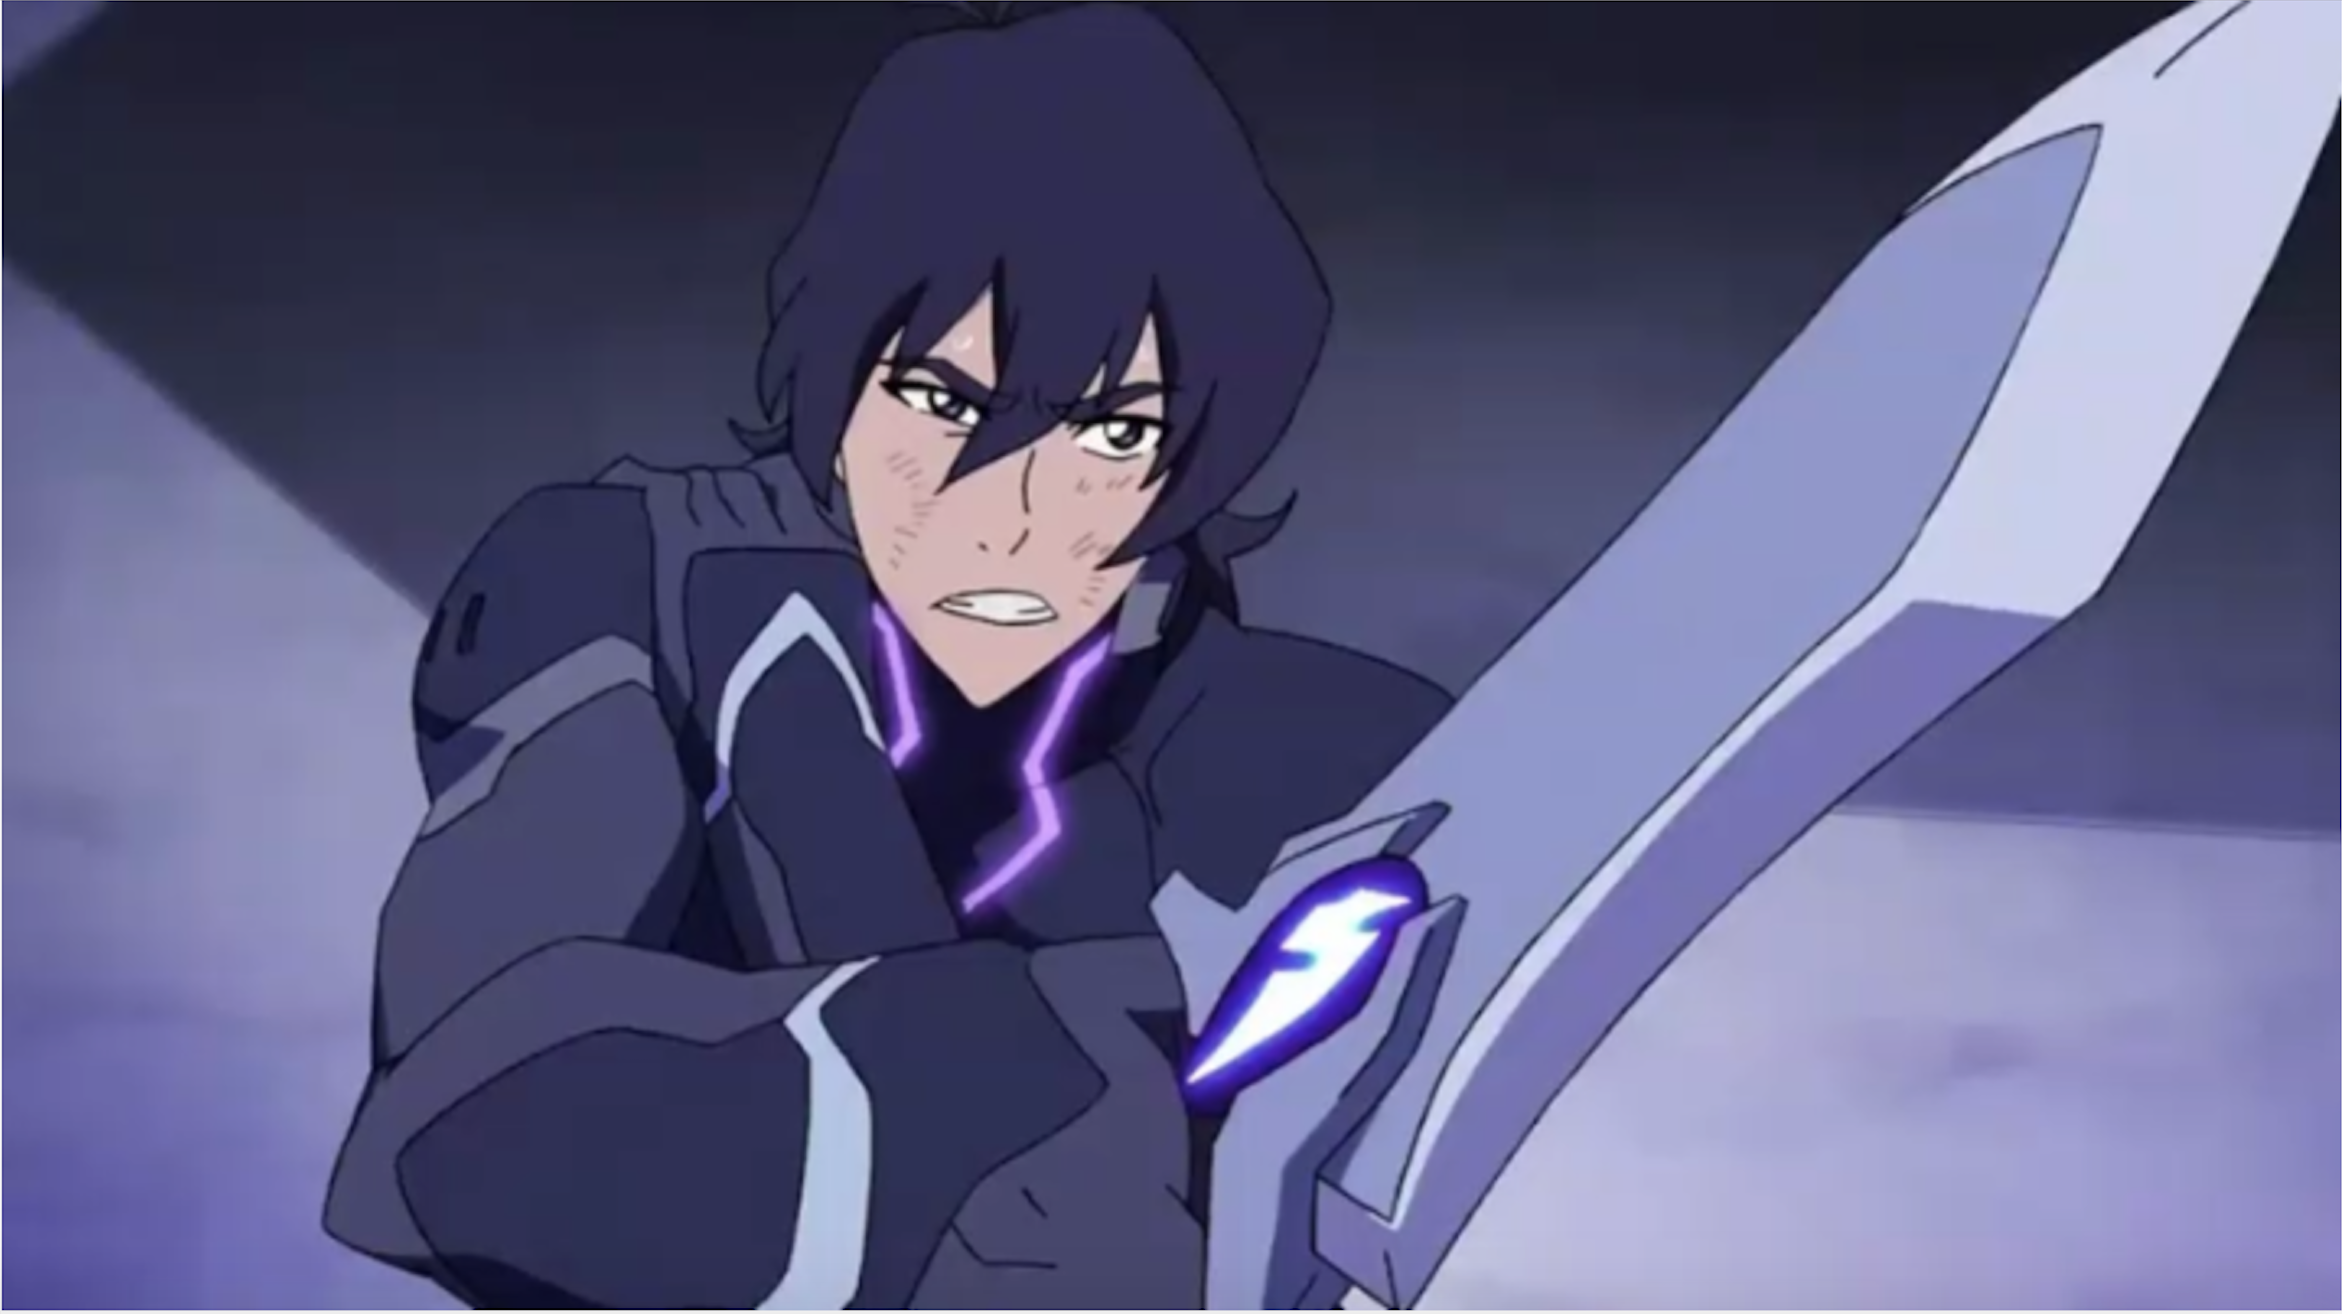 Keith Being Seriously Injured In The Fighting Challenge In